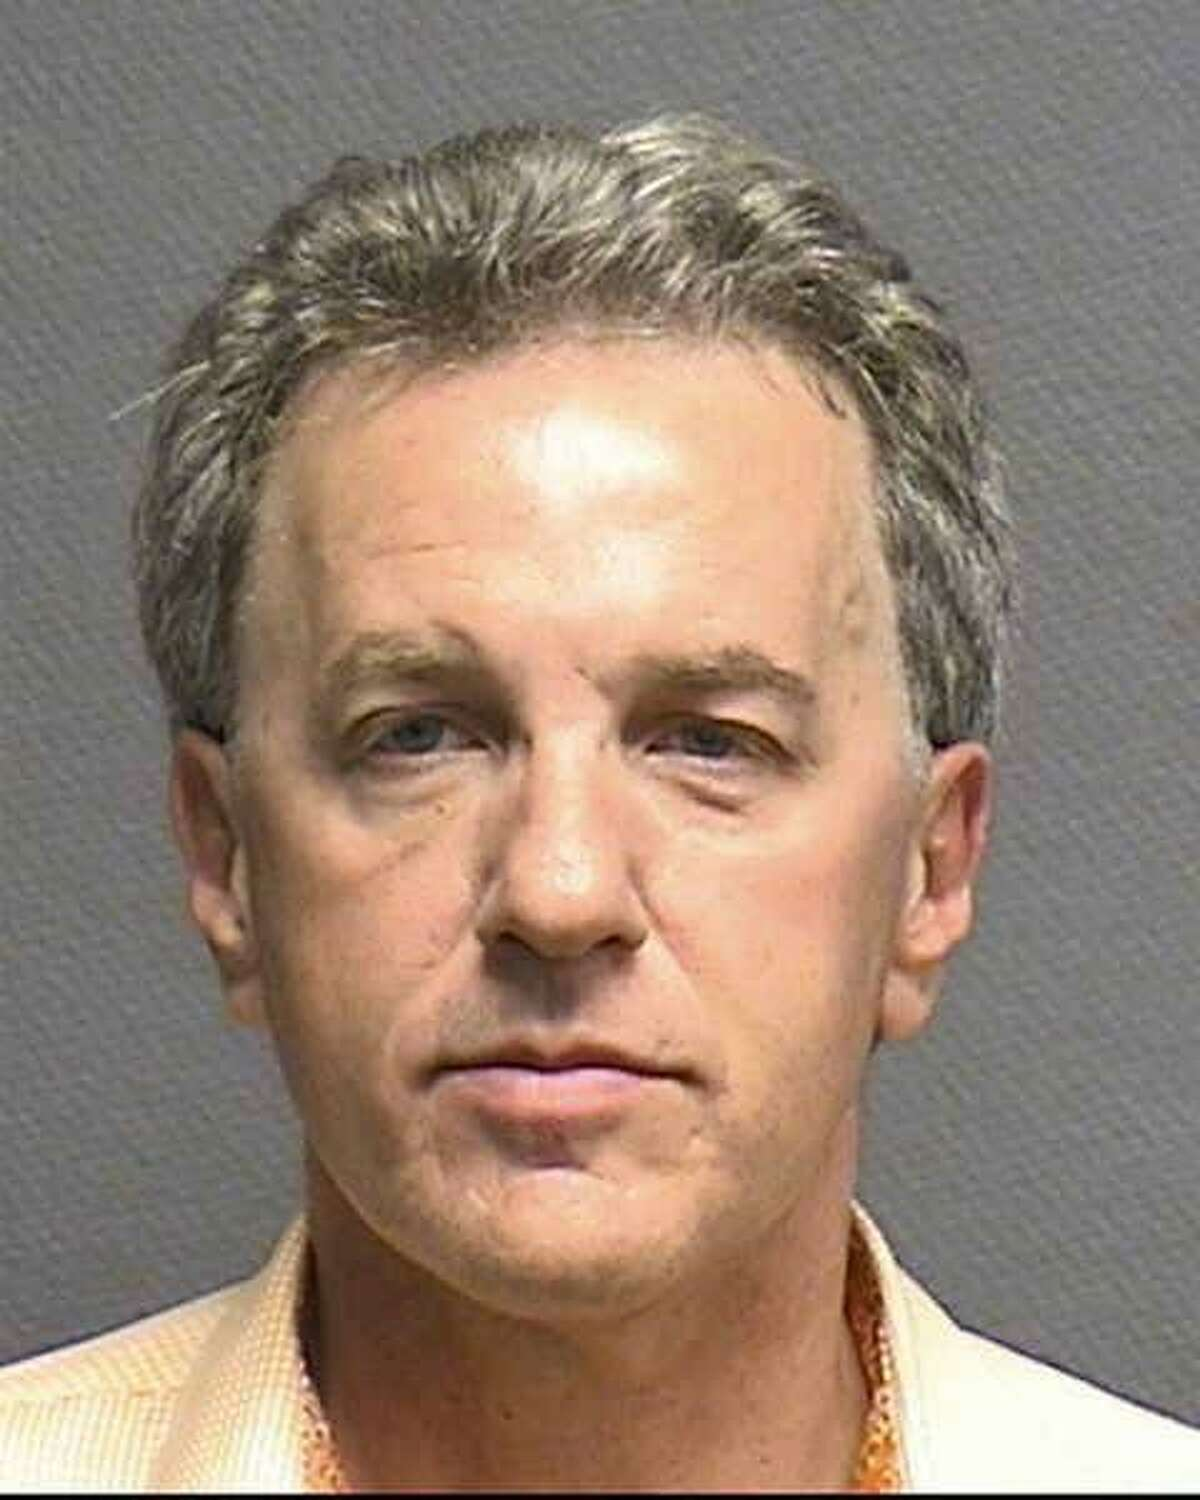 Attorney Jeffrey Stern, age 53, (date of birth 3/16/57), of Bellaire - husband of the woman shot. Right now, he is only charged with unlawfully carrying a weapon. He admitted to his wife that he was having an affair with the woman accused of orchestrating the murder-for-hire plot, according to Yvonne Stern's divorce attorney. His mugshot was released by the Harris County Sheriff's Office.